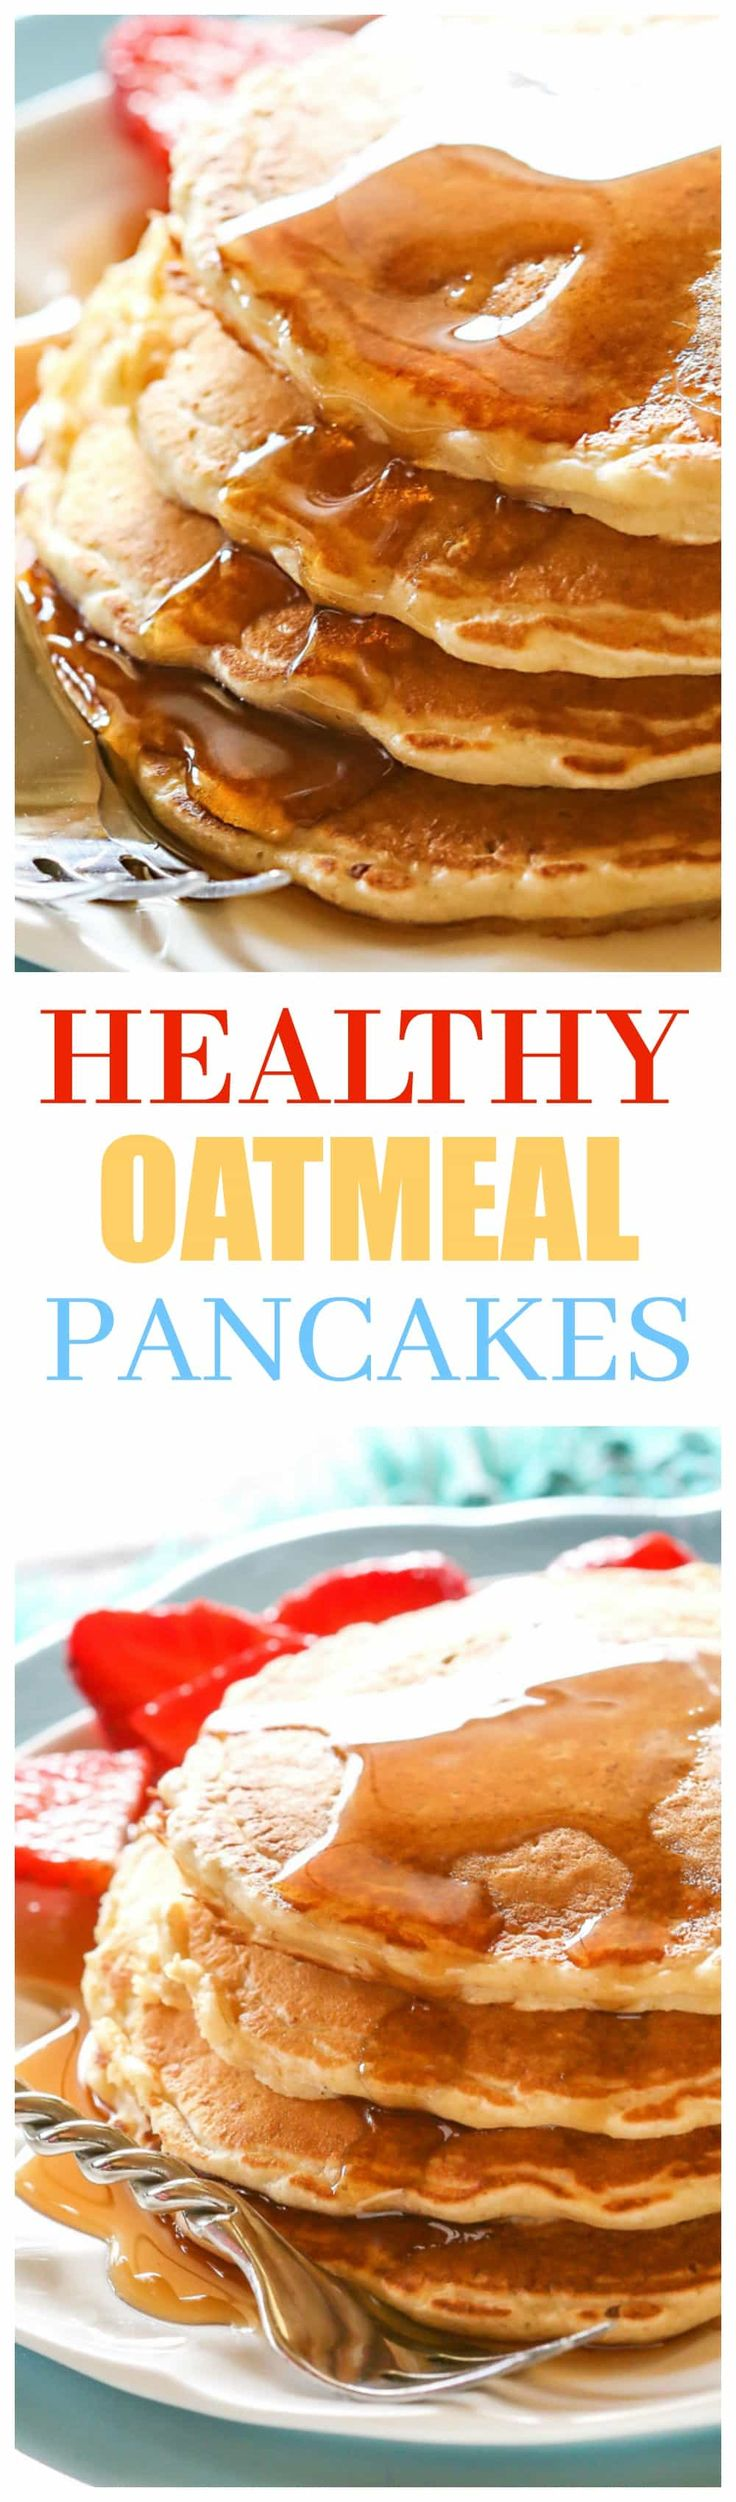 Healthy Oatmeal Pancakes - a hearty pancake recipe with blended oats in the batter. the-girl-who-ate-everything.com